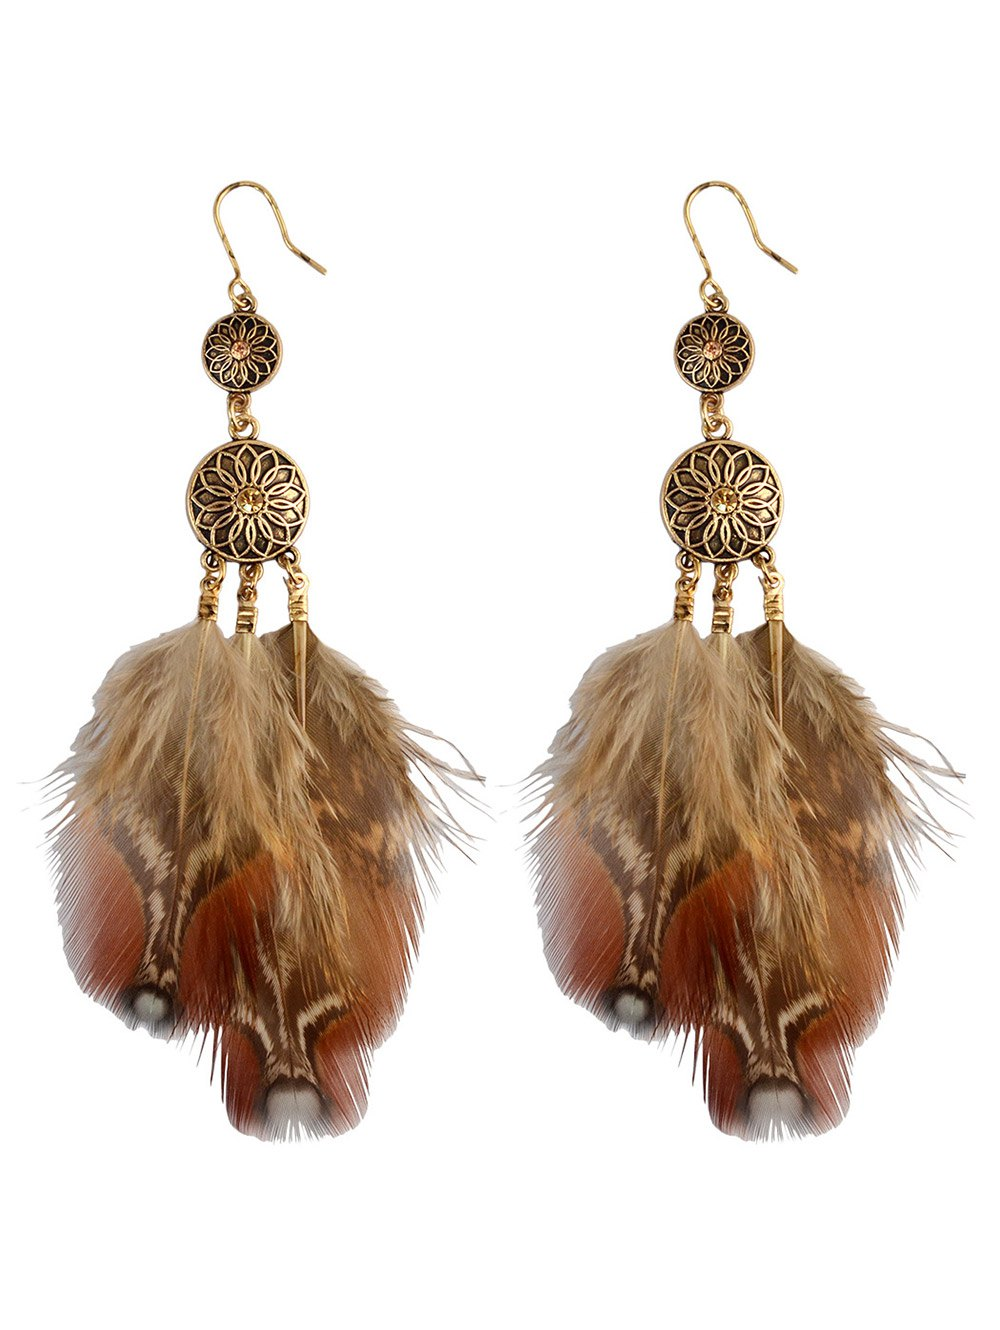 Rhinestone Feather Floral Bohemian Drop Earrings